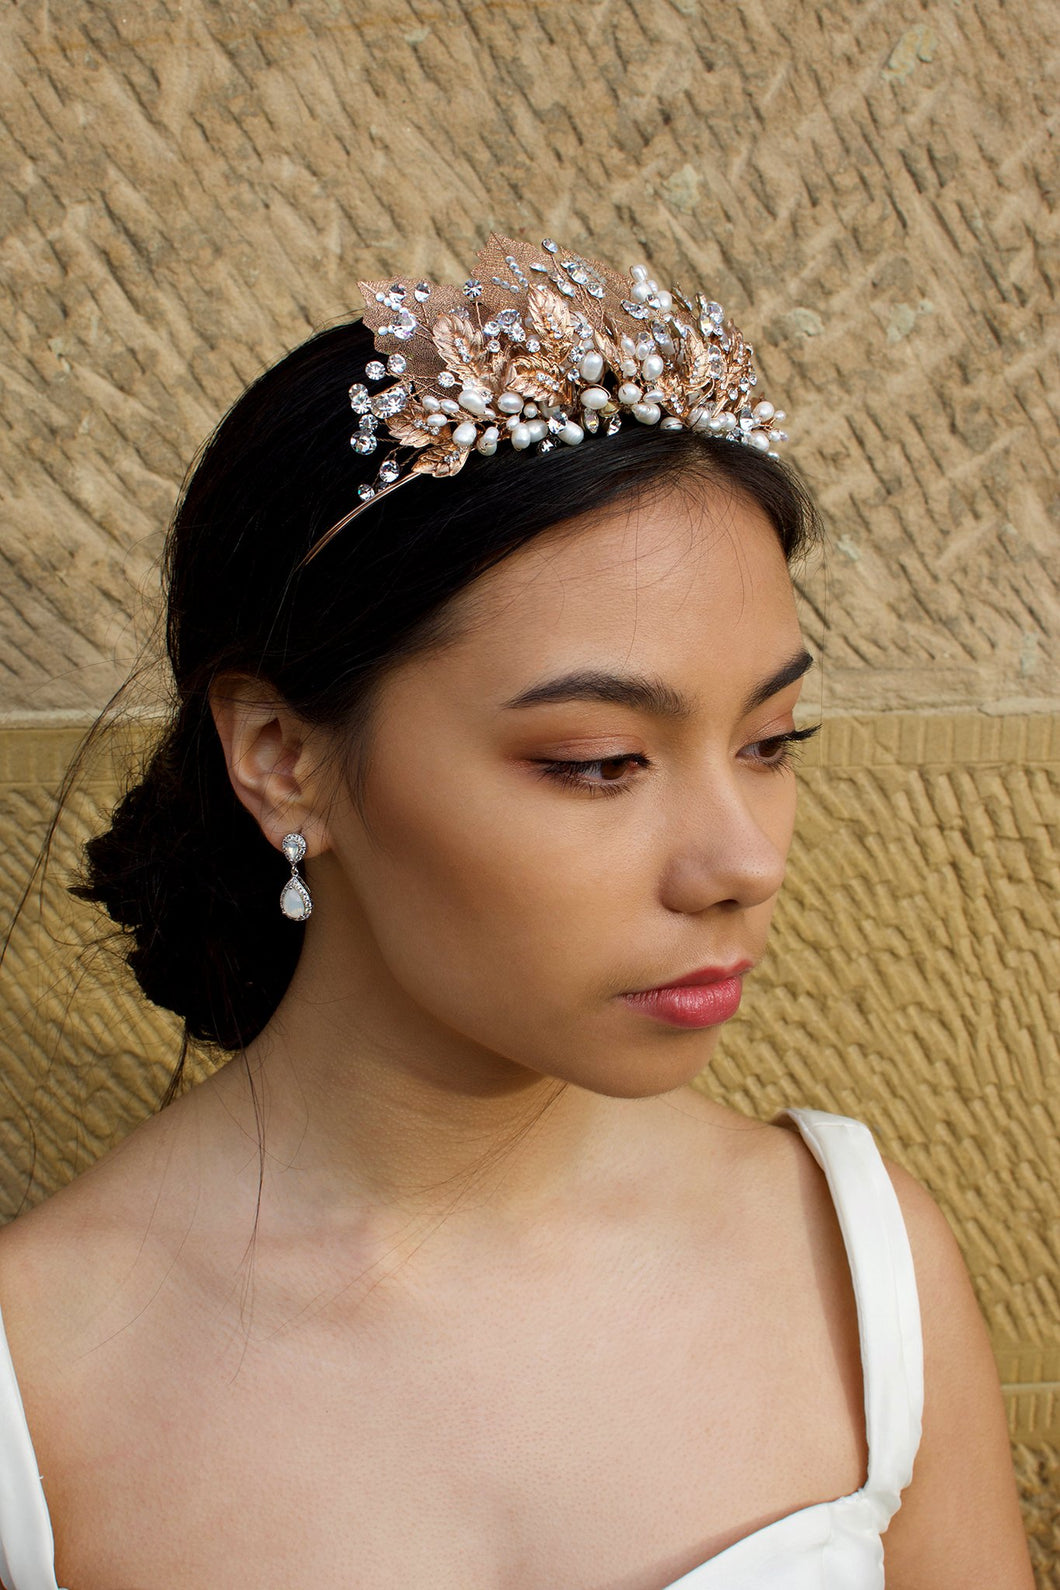 A black haired model wears a rose gold tiara with pearls in the background is a  wall.